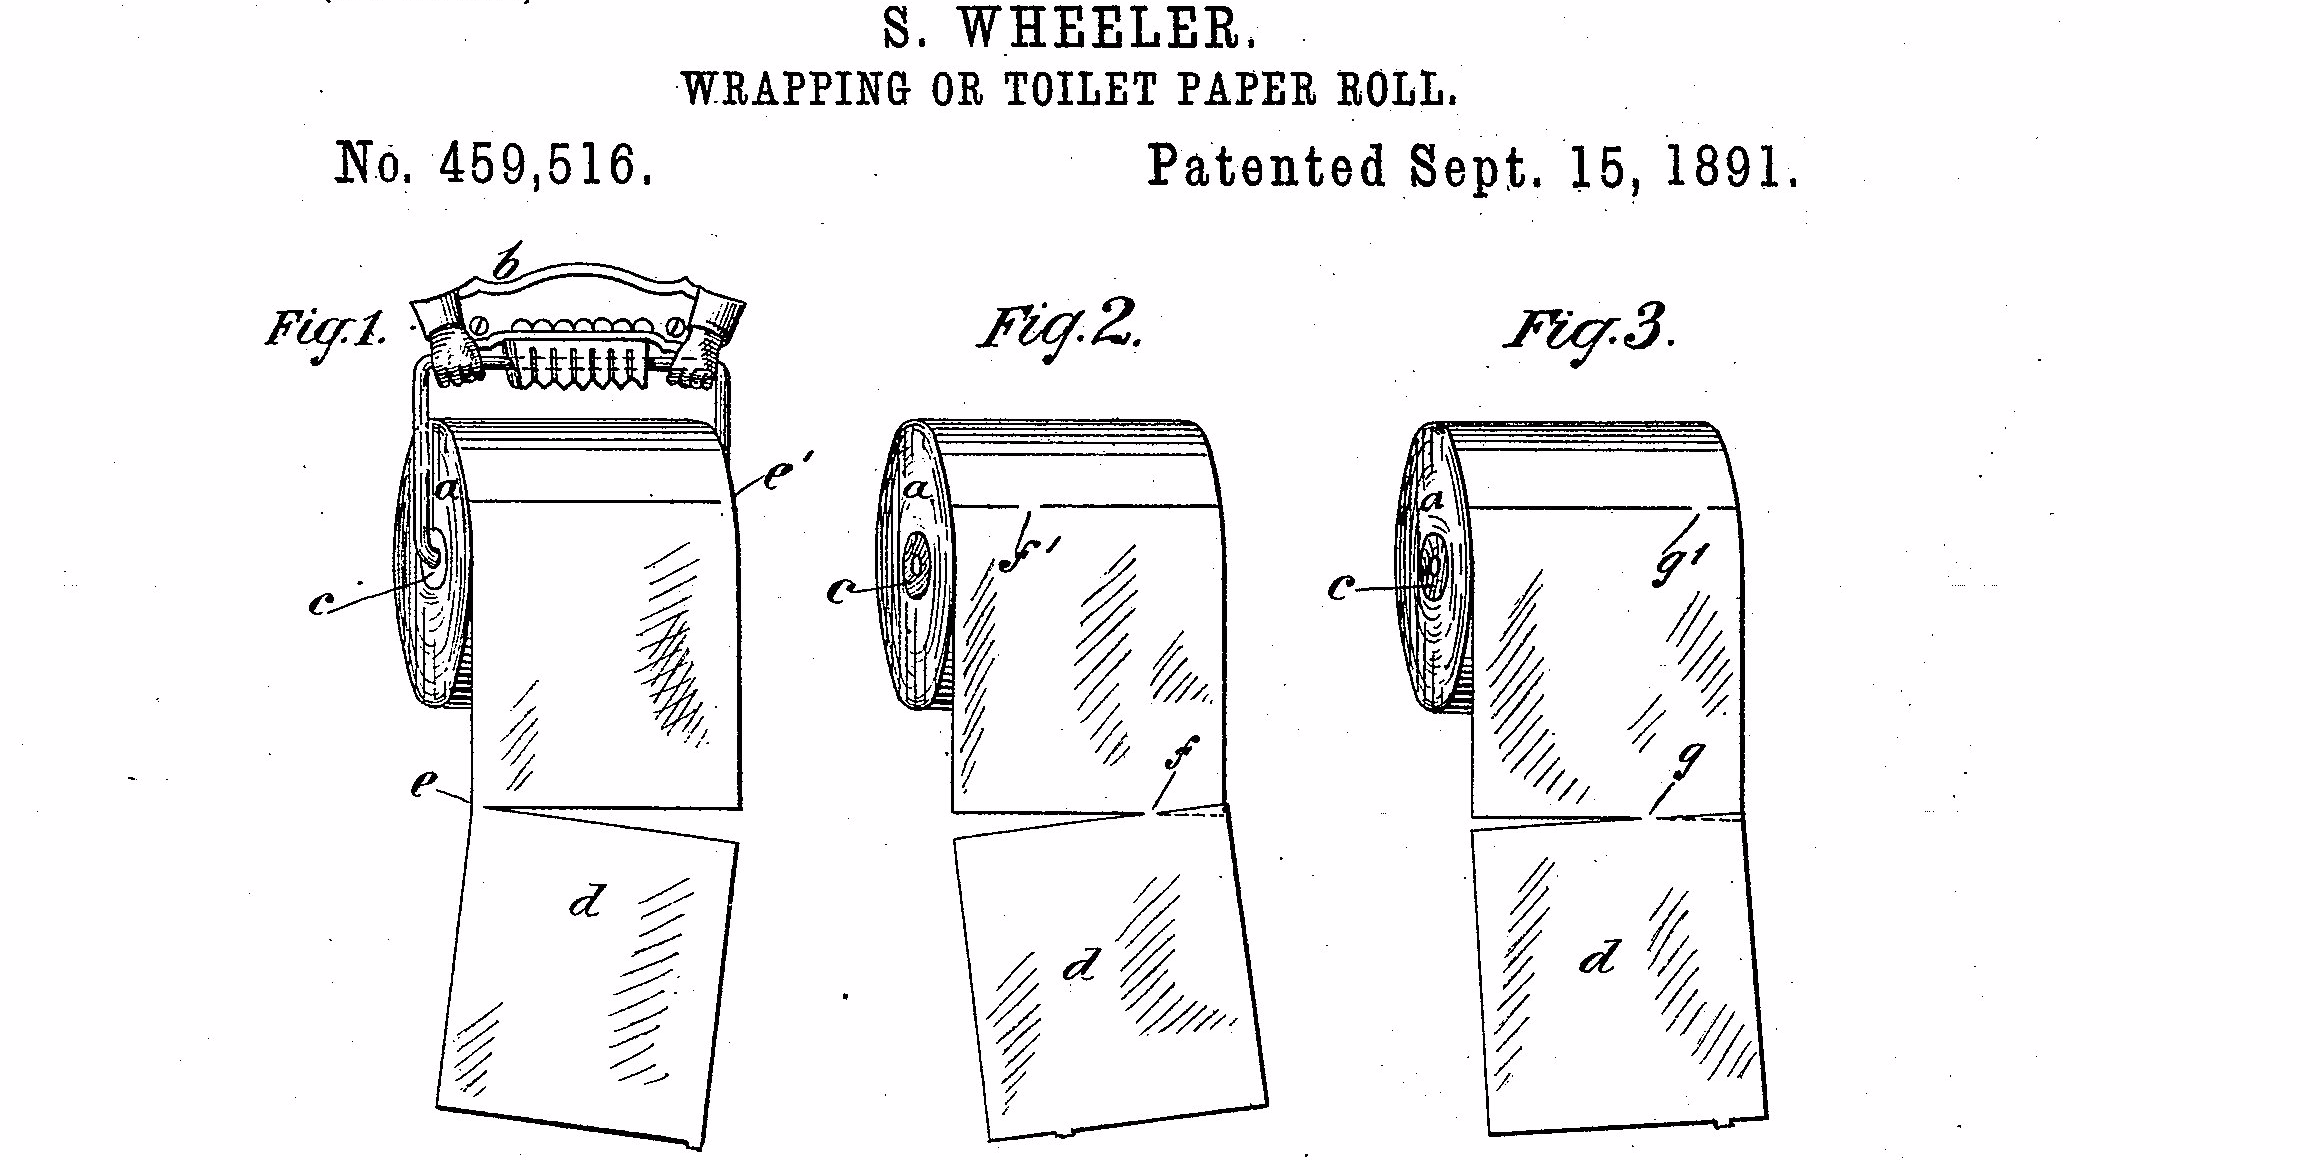 Patent Shows Right Way To Hang Toilet Paper